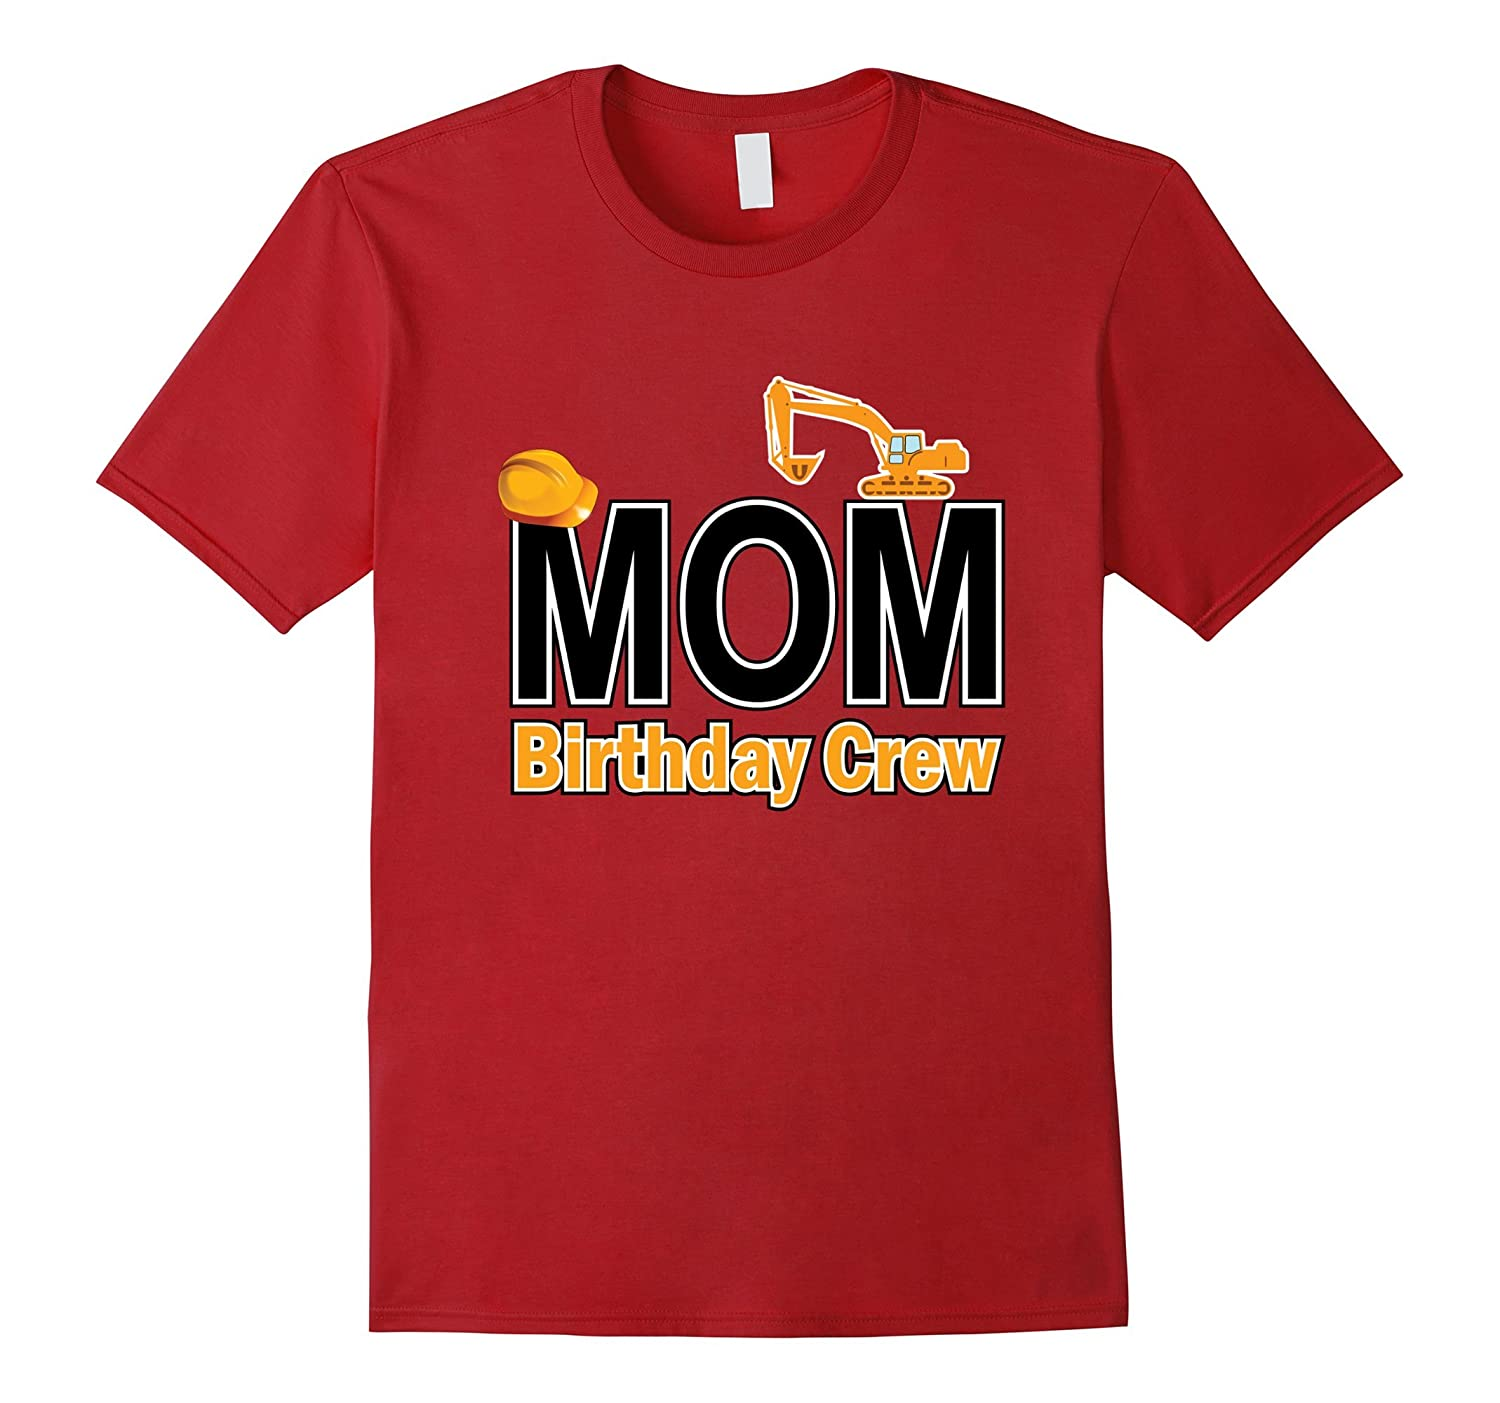 Mom Birthday Crew Shirts For Construction Party TD Teedep